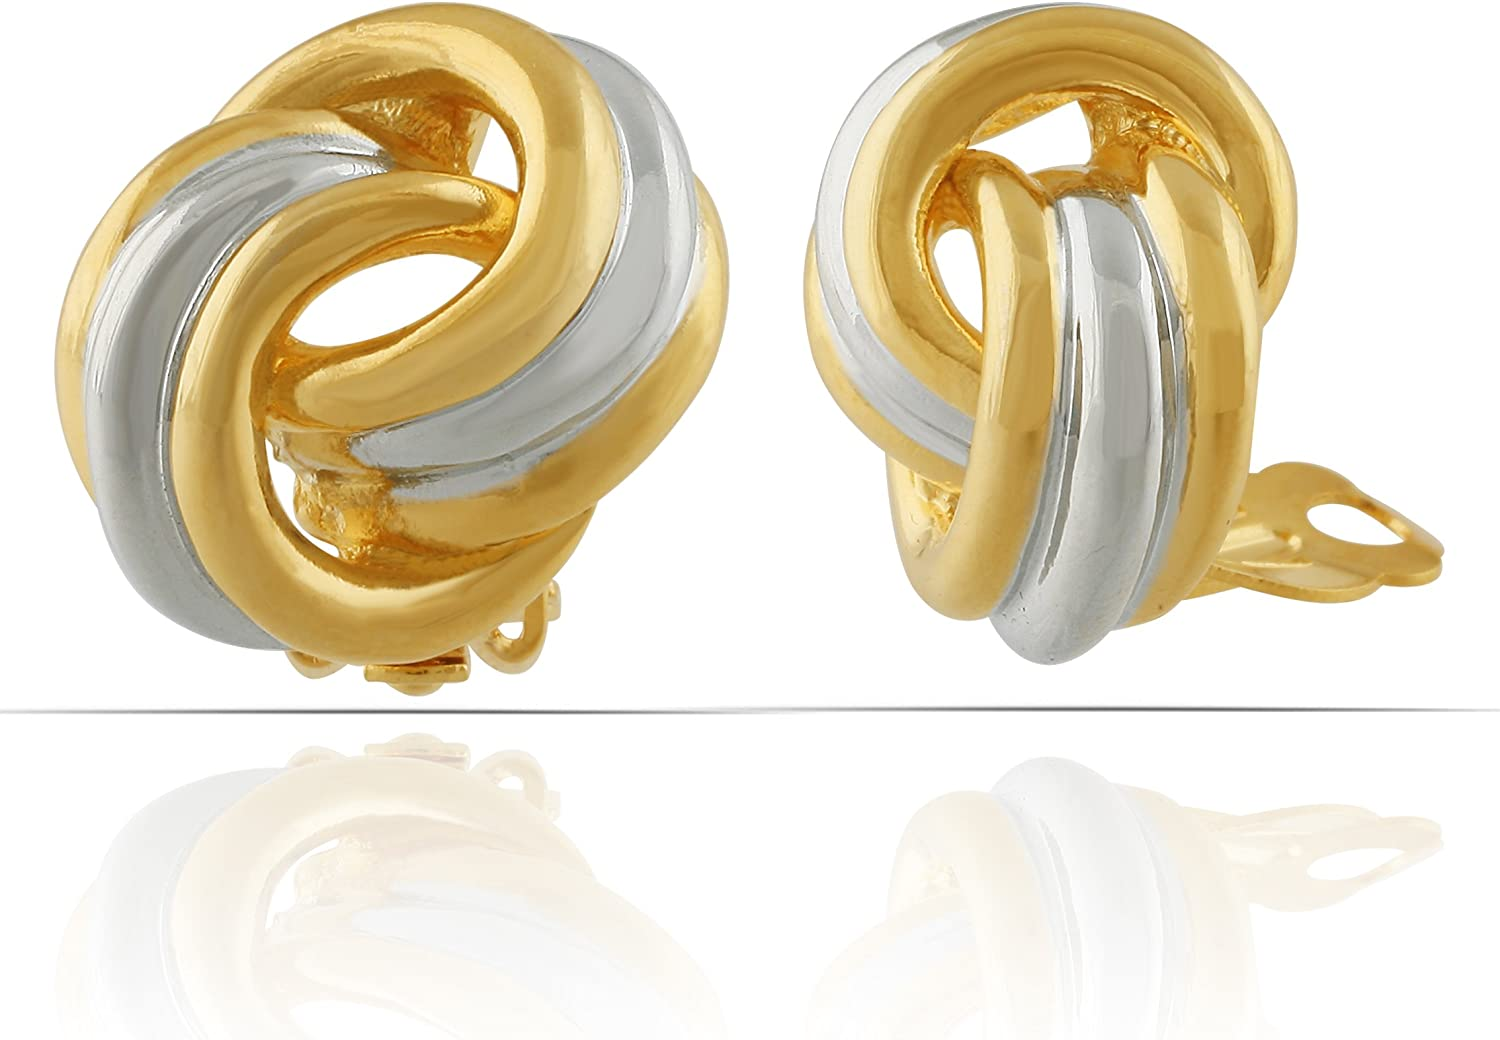 JanKuo Jewelry Two Tone Shining Polished Finish Knot Clip On Earrings